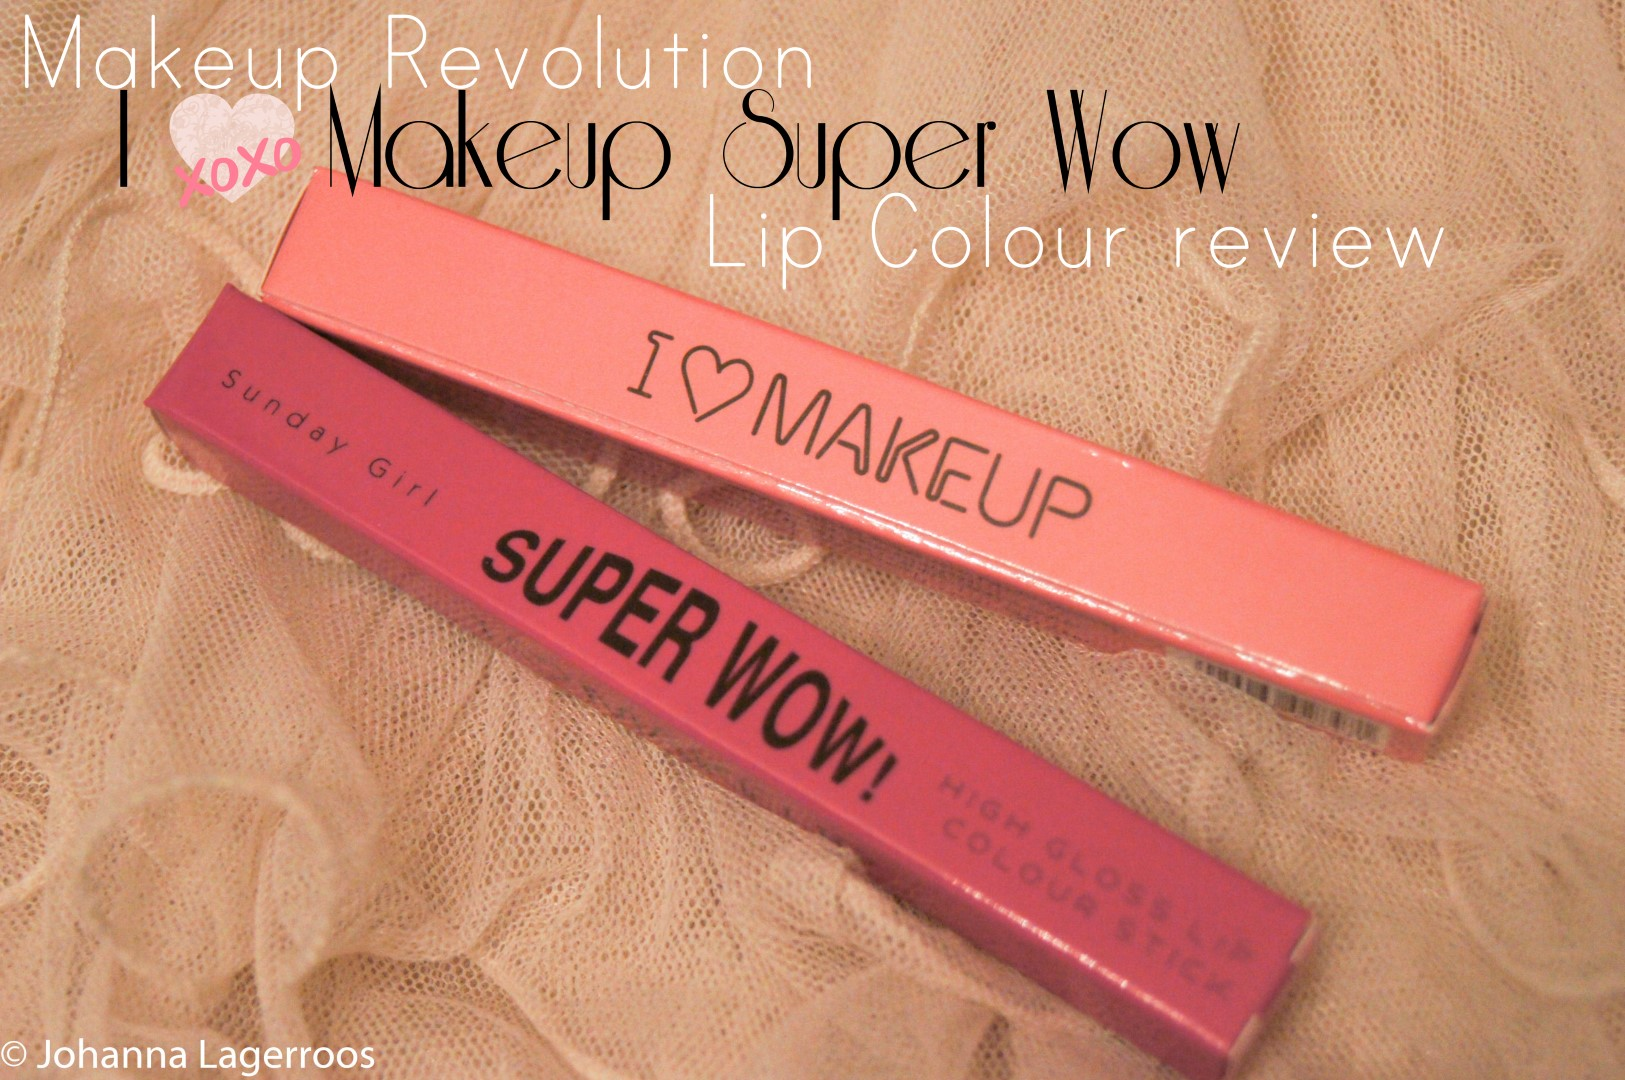 Makeup Revolution Super Wow lip colour